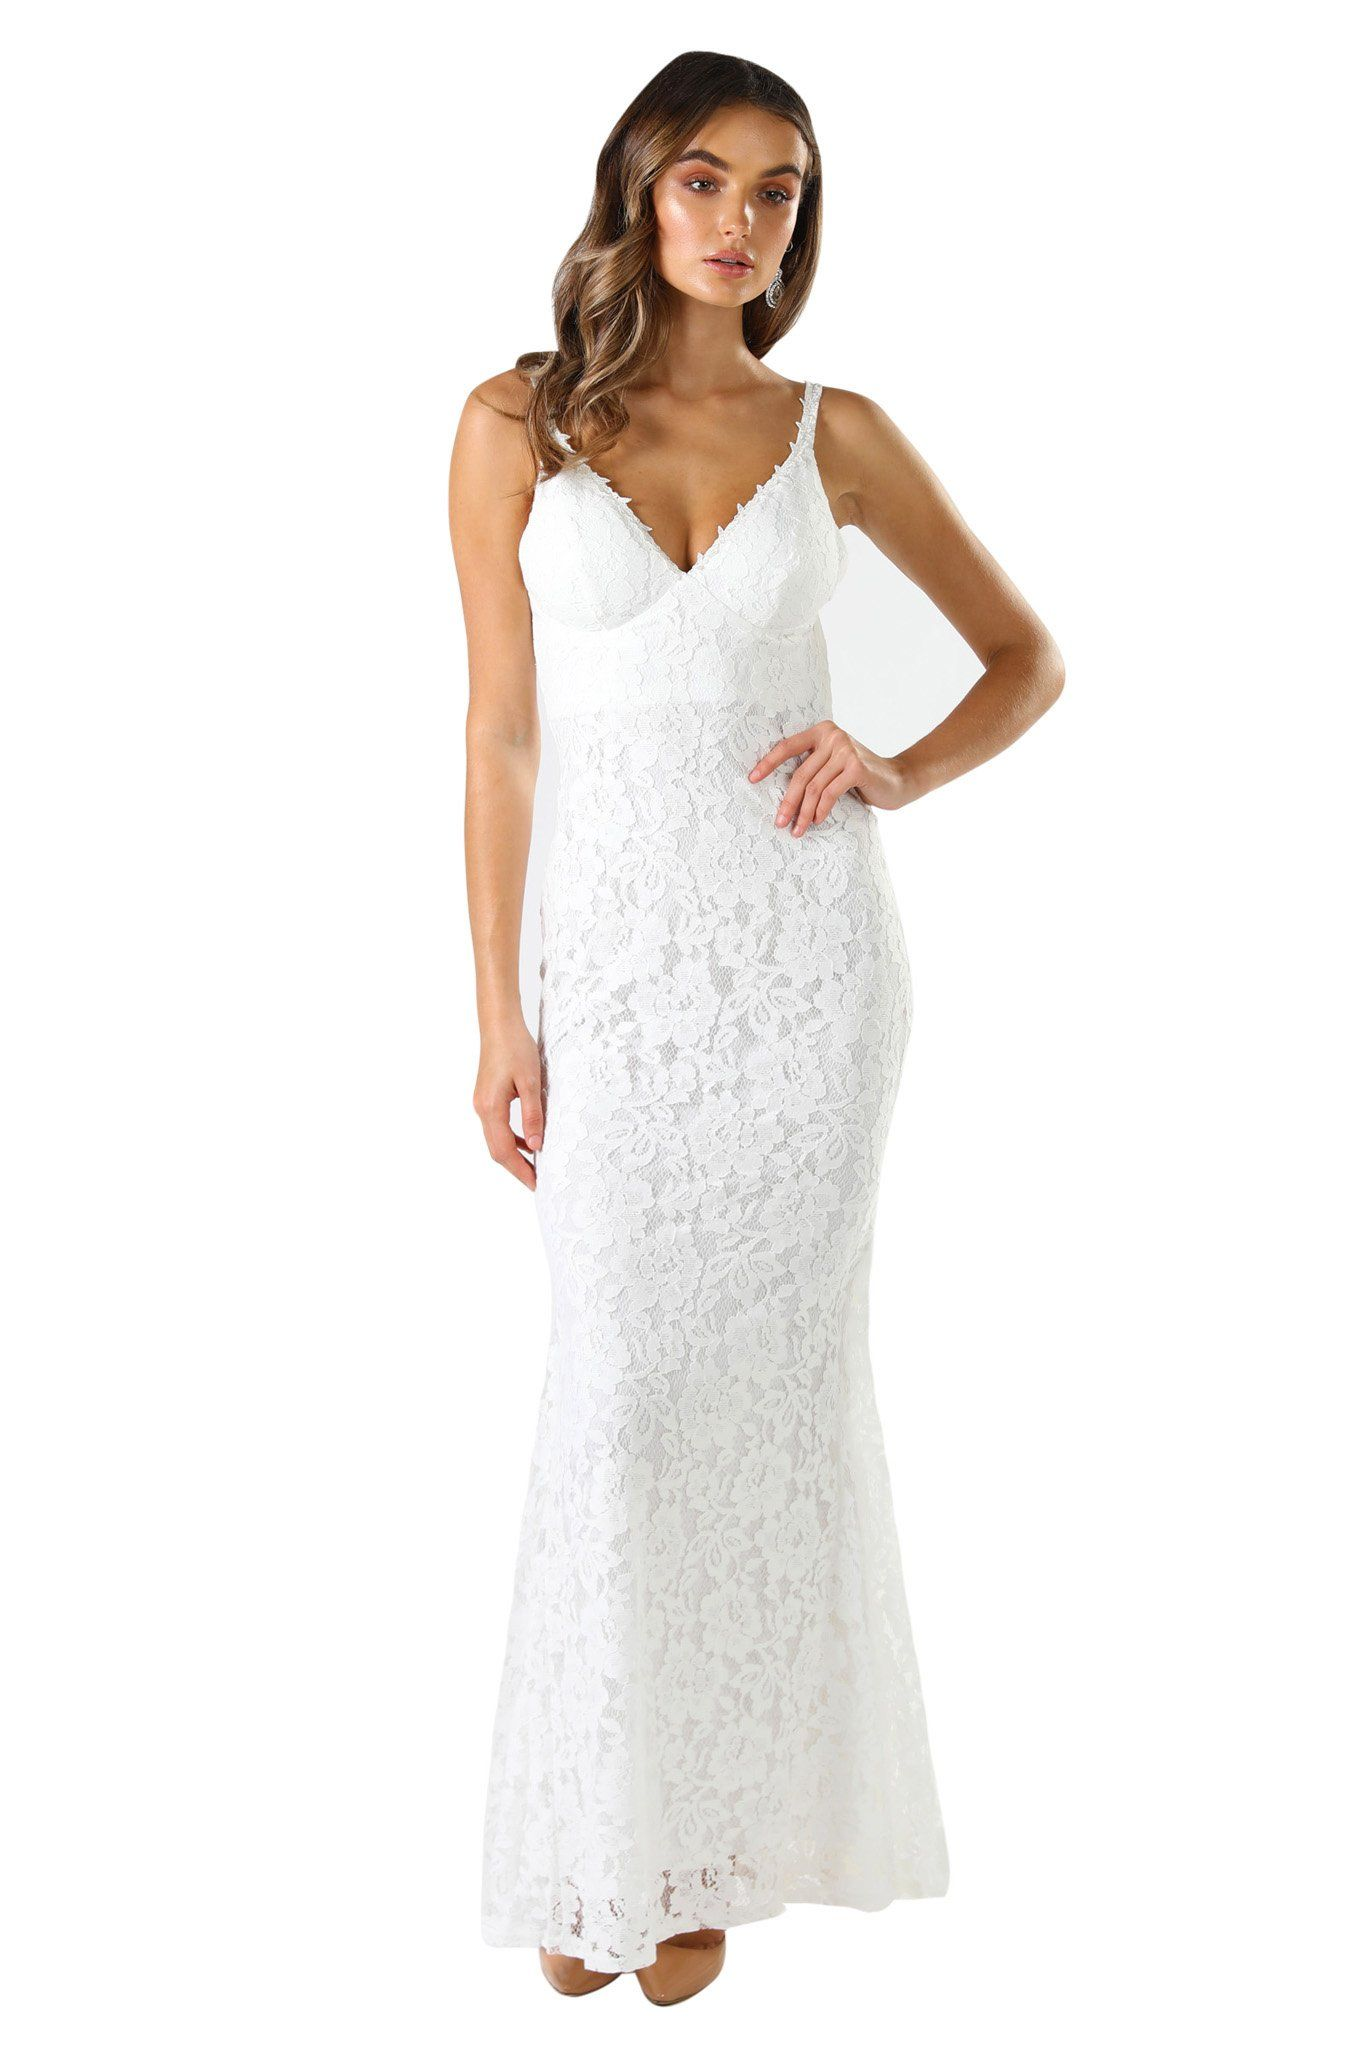 White sleeveless lace fitted maxi formal dress V neck, shoulder straps, V shaped backless design